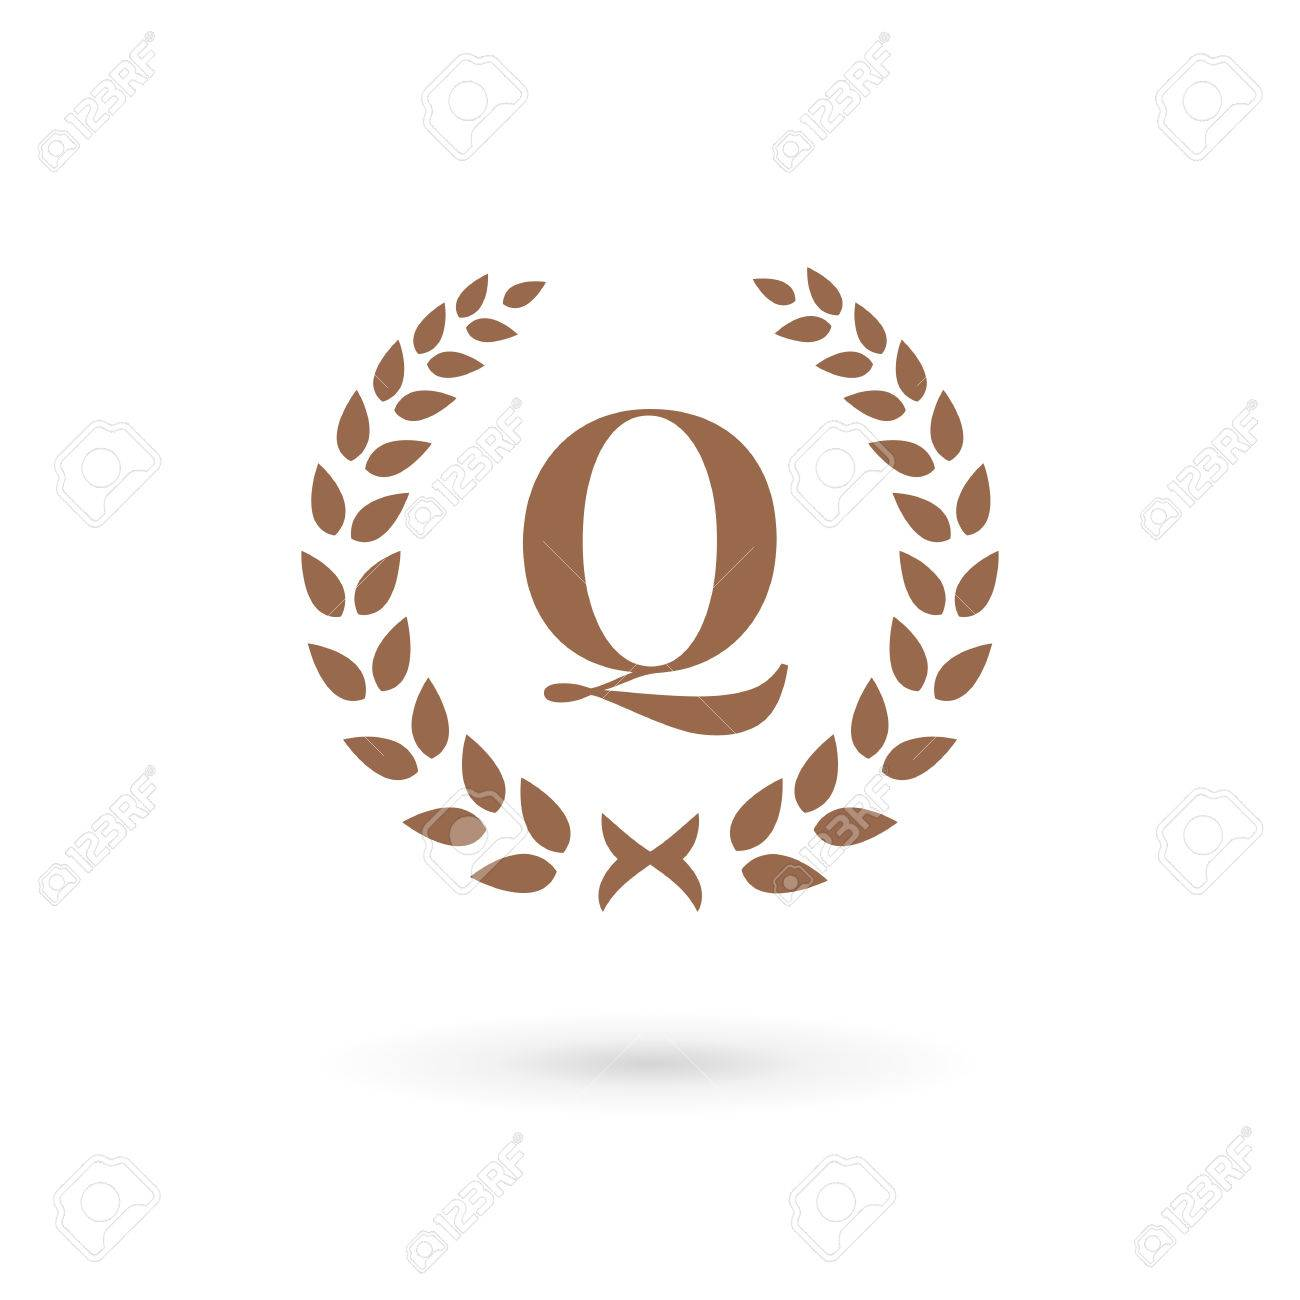 letter q laurel wreath logo icon design template elements royalty